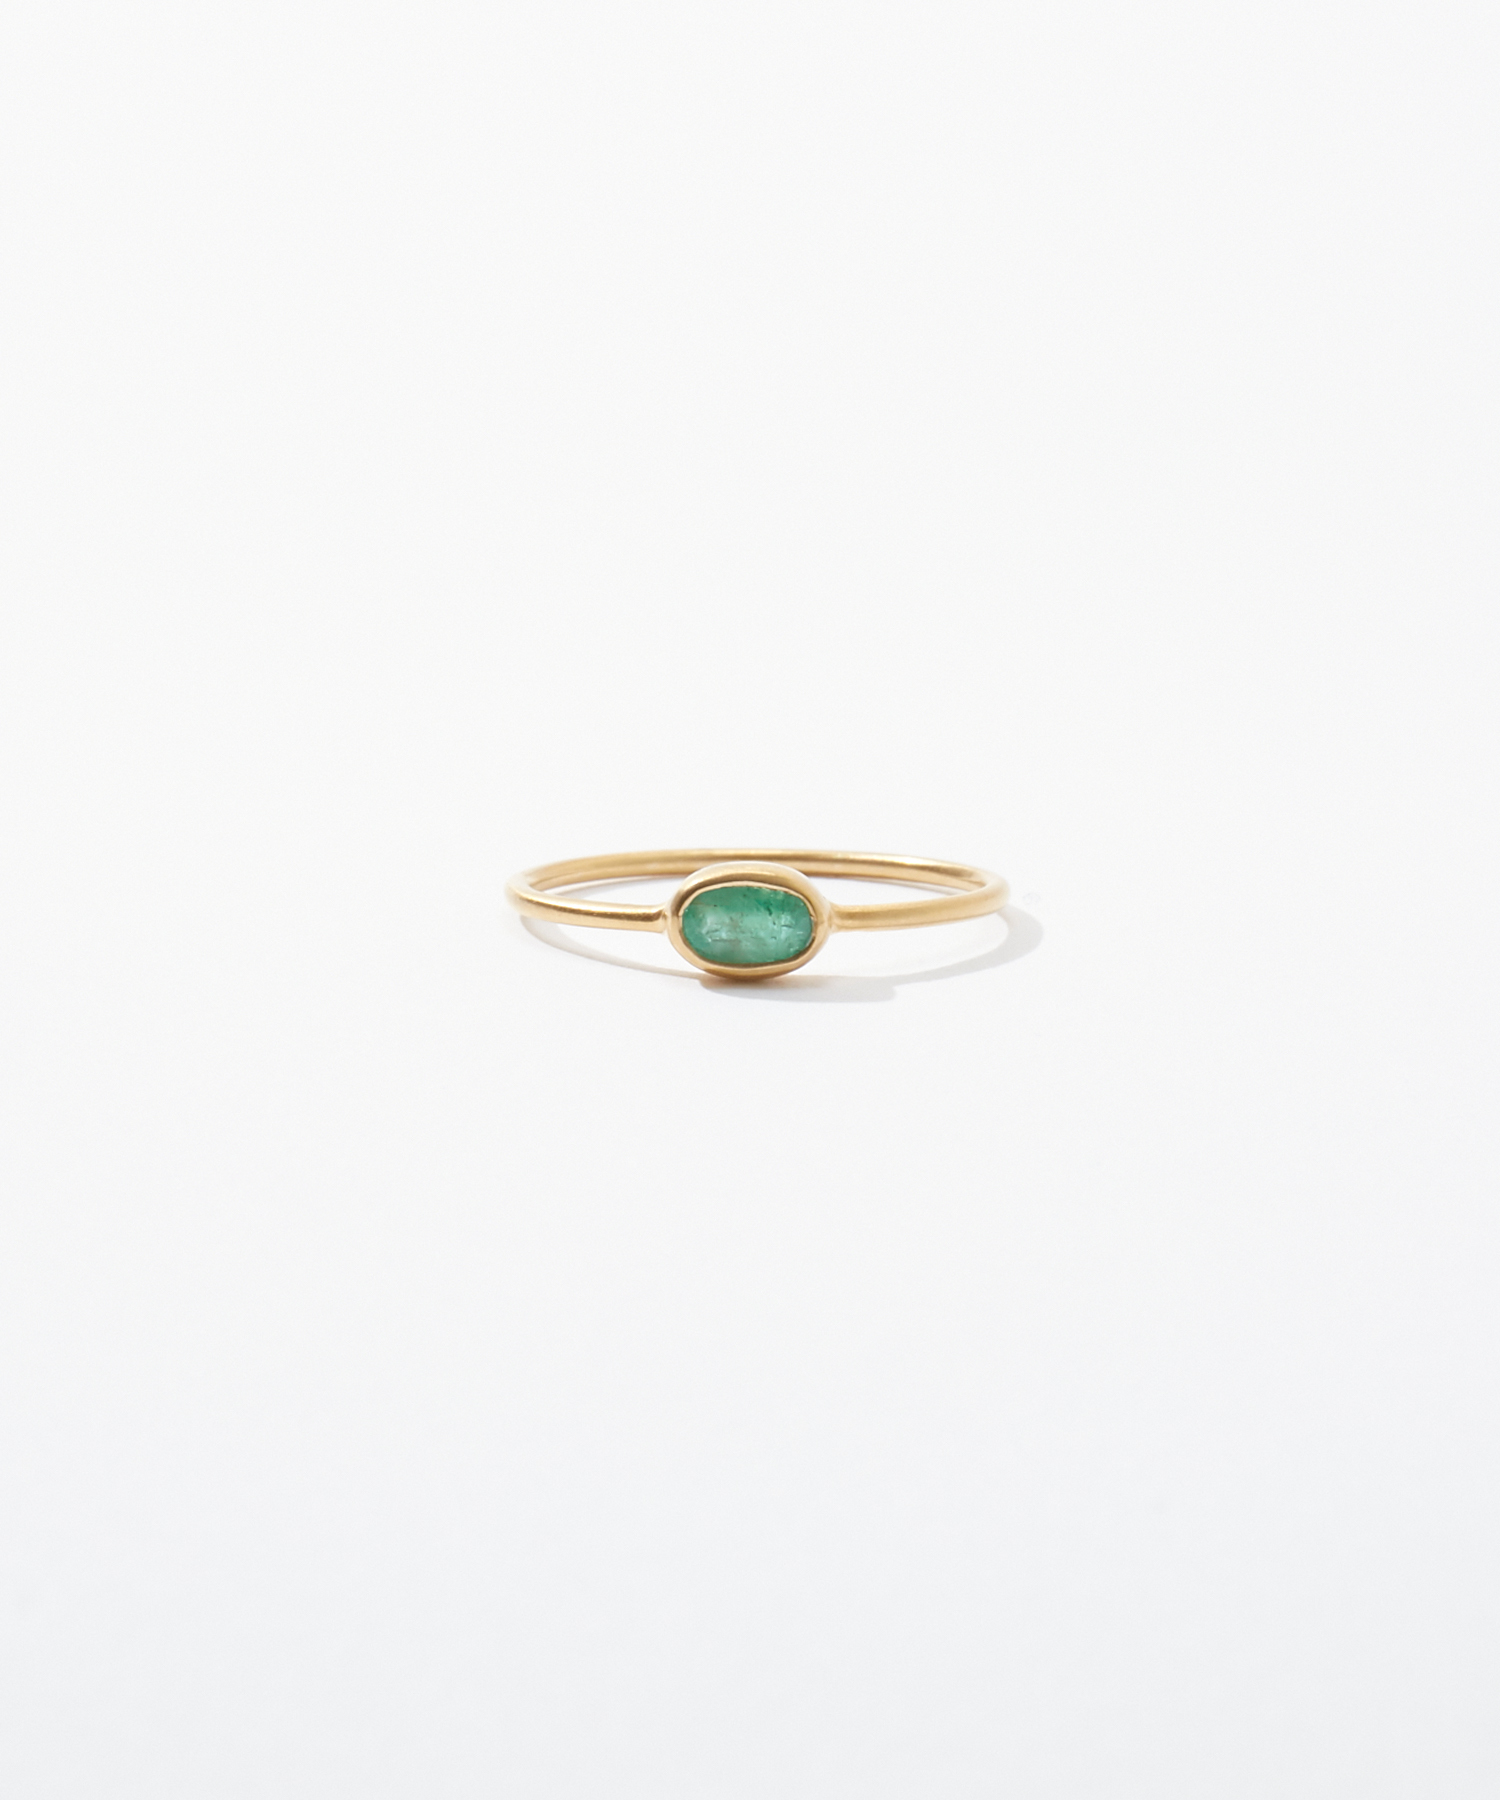 [jardin] K10 oval emerald ring